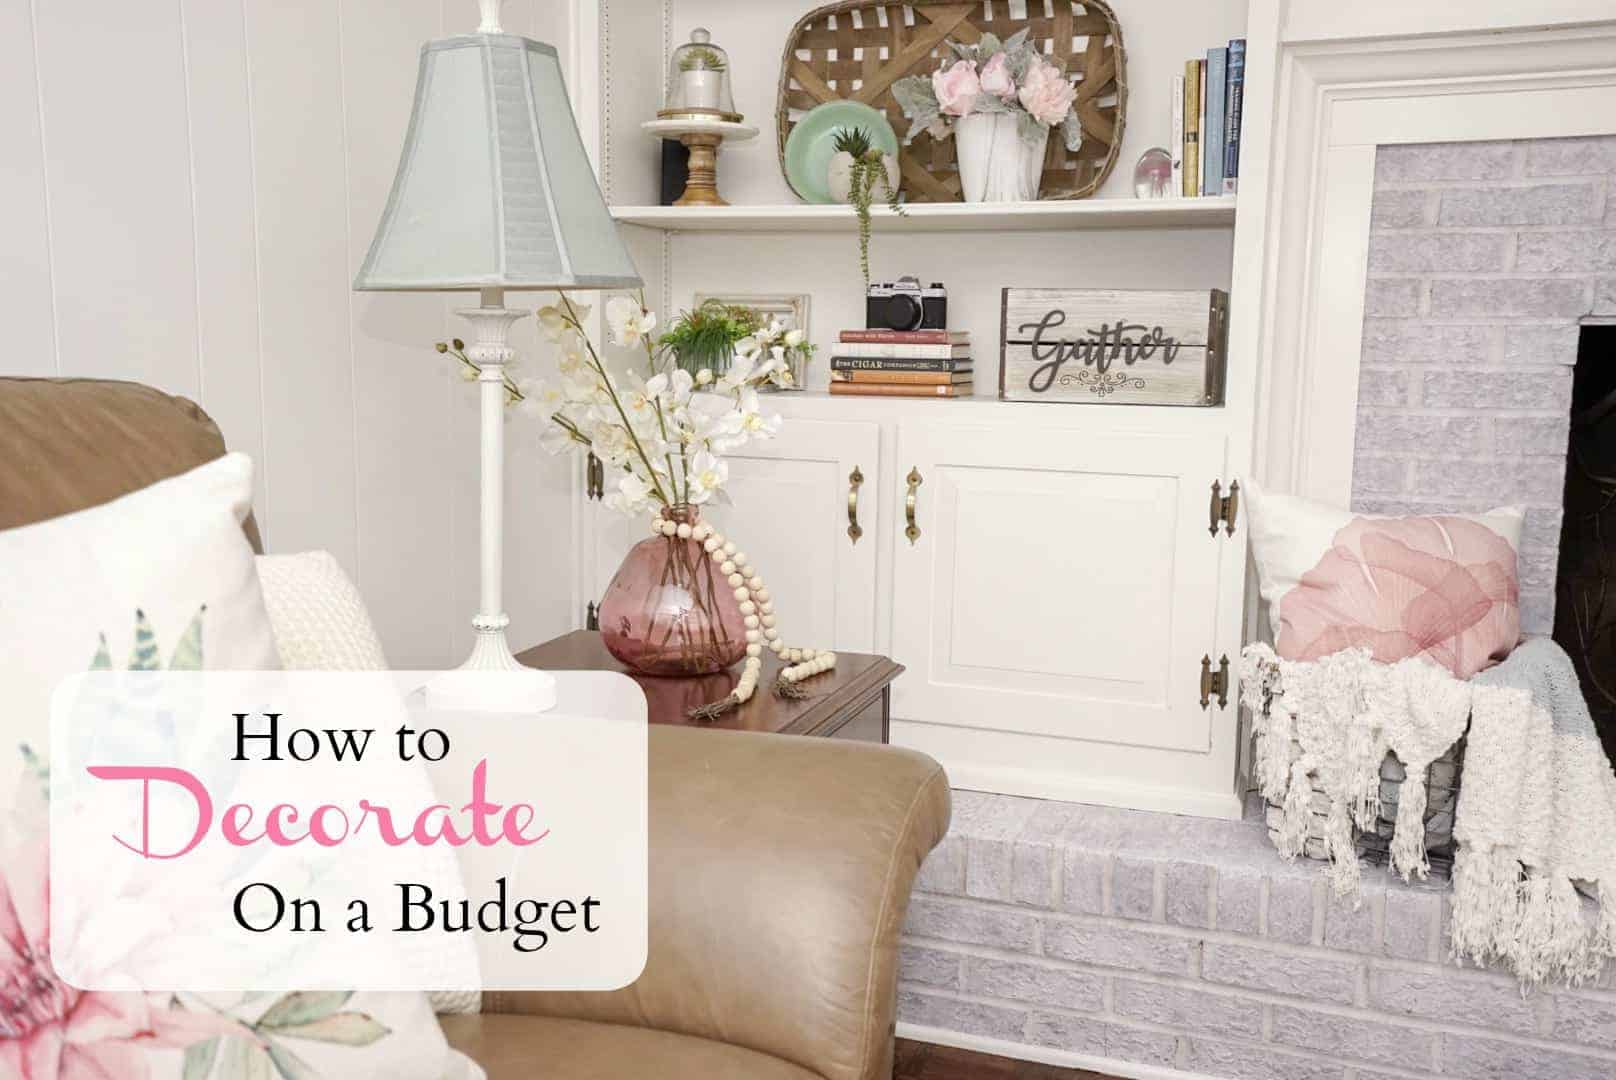 I love decorating and making a space my own, and I love making it happen on a budget. So, here are my top ten tips for decorating on a budget.